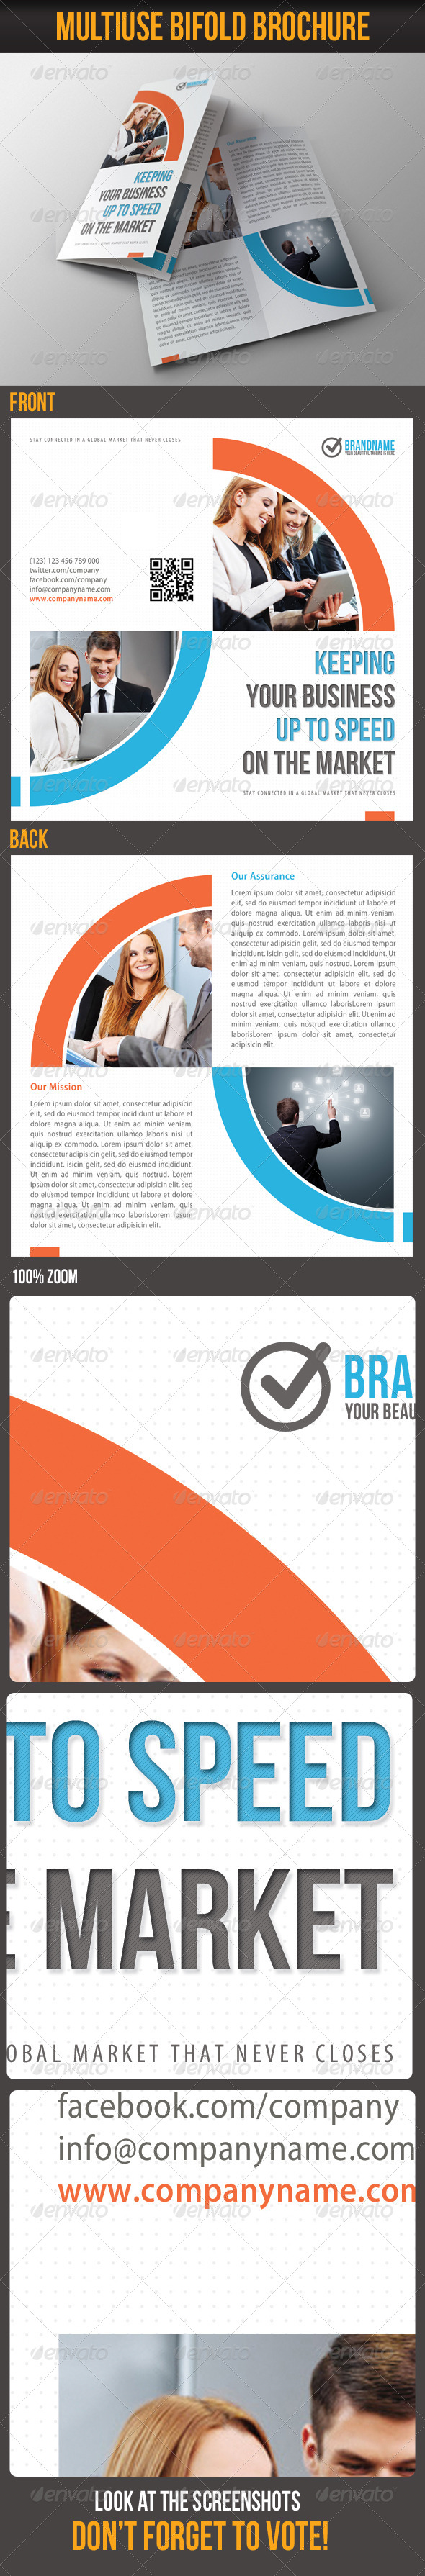 GraphicRiver Multiuse Bifold Brochure 10 6097322